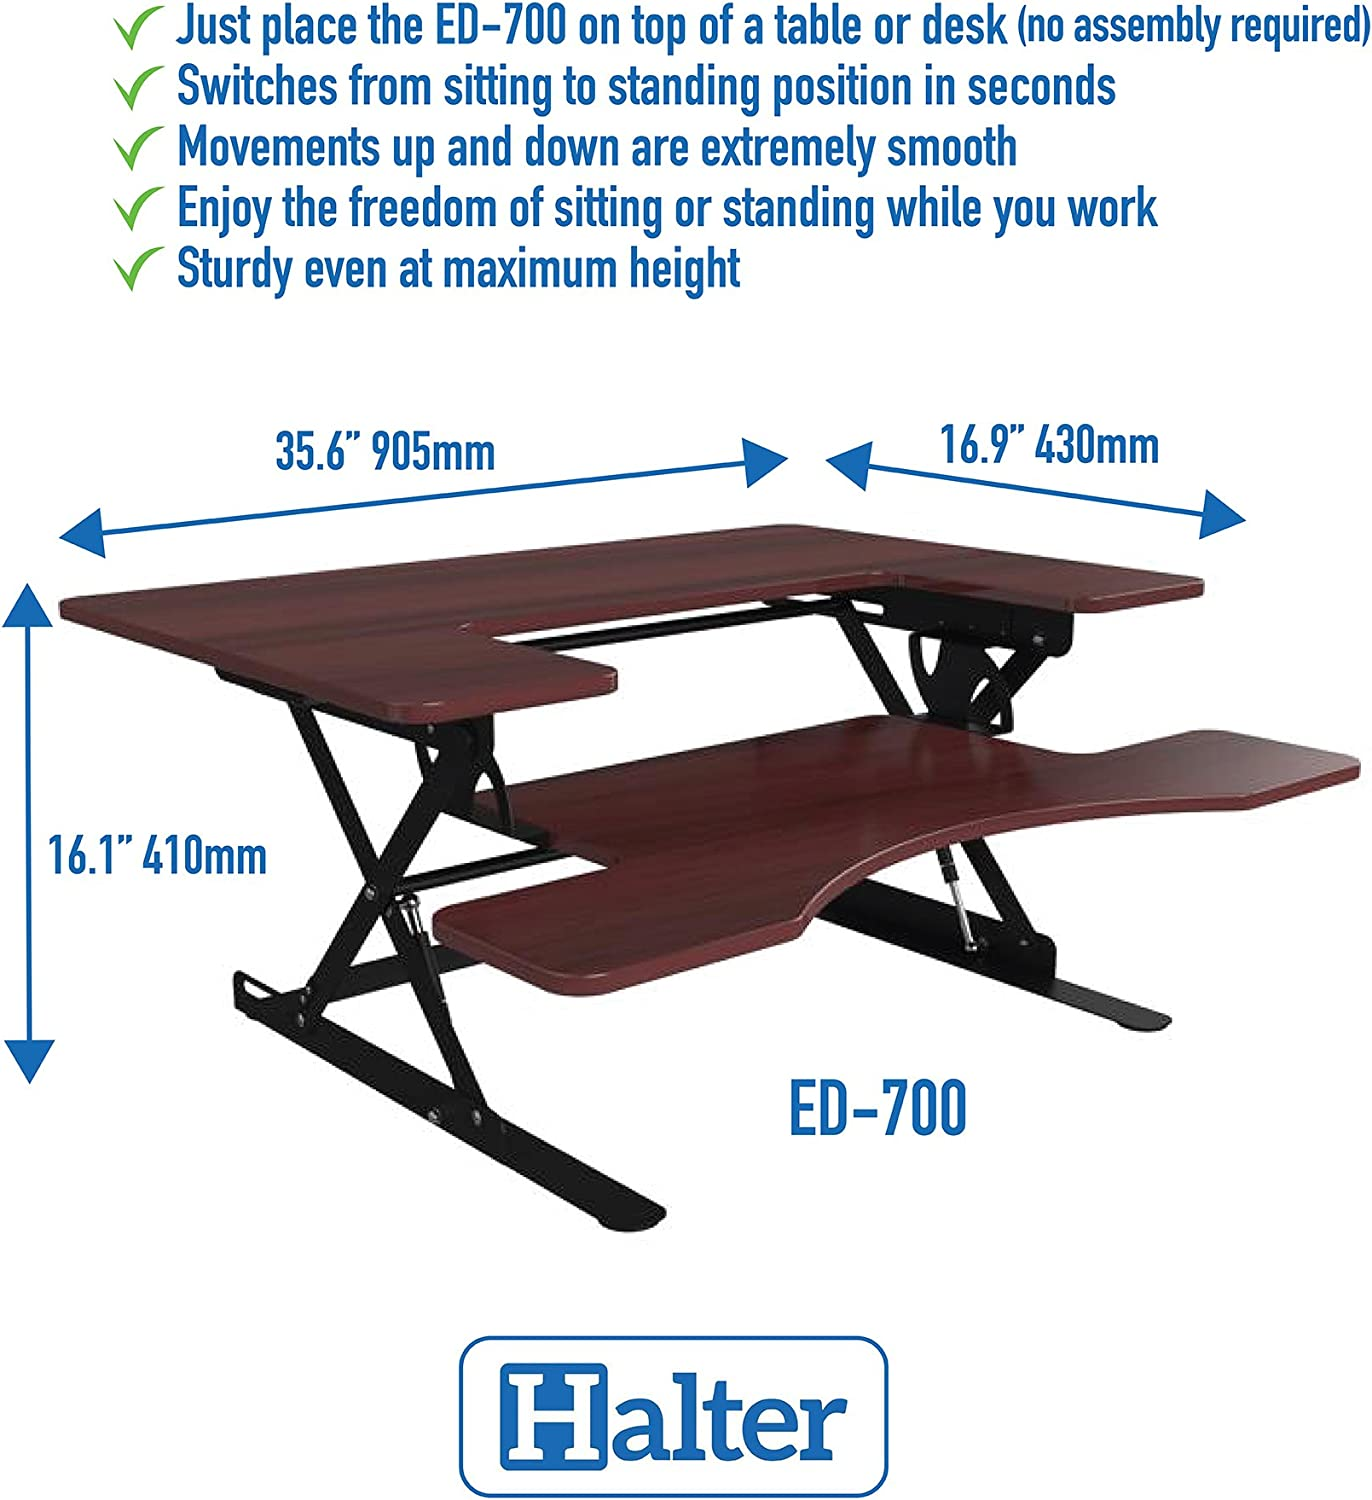 Halter ED-700 Preassembled Height Adjustable Desk Sit/Stand Elevating Tabletop Desktop - Cherry …